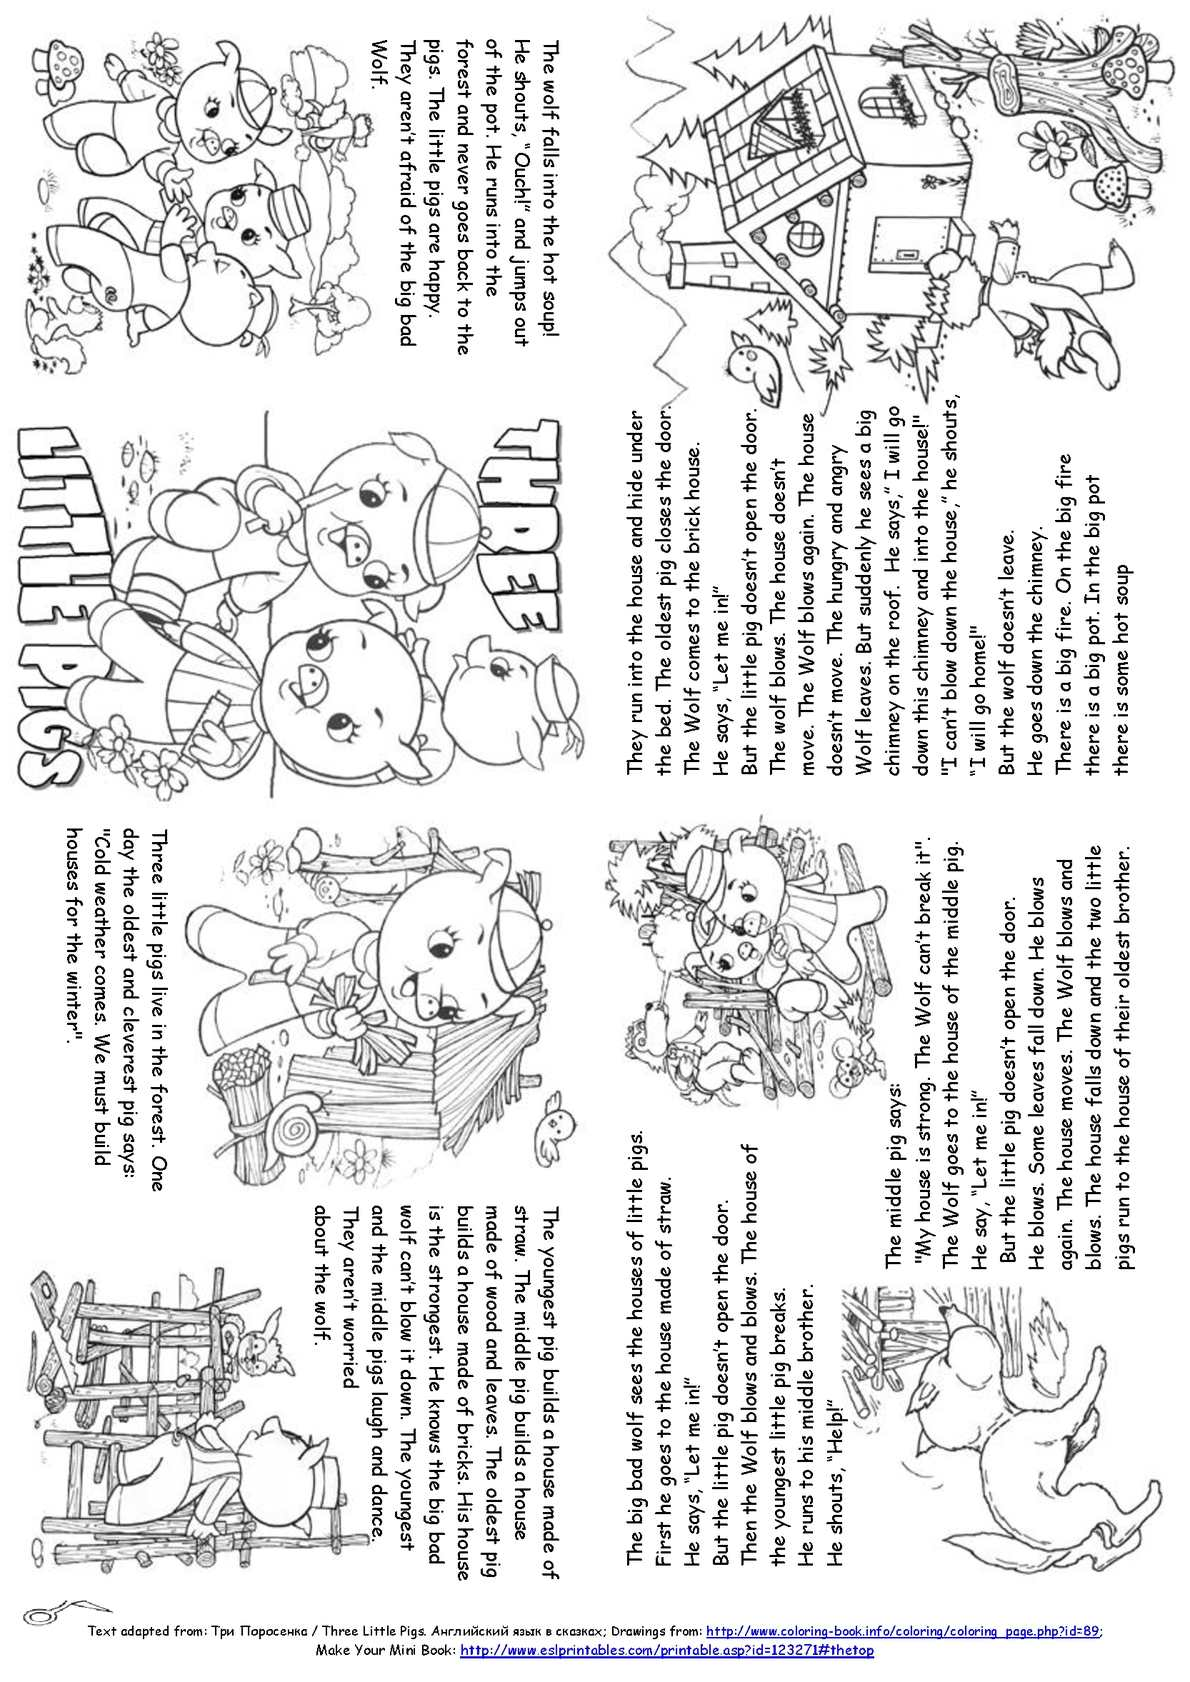 It is a picture of Wild Three Little Pigs Story Printable